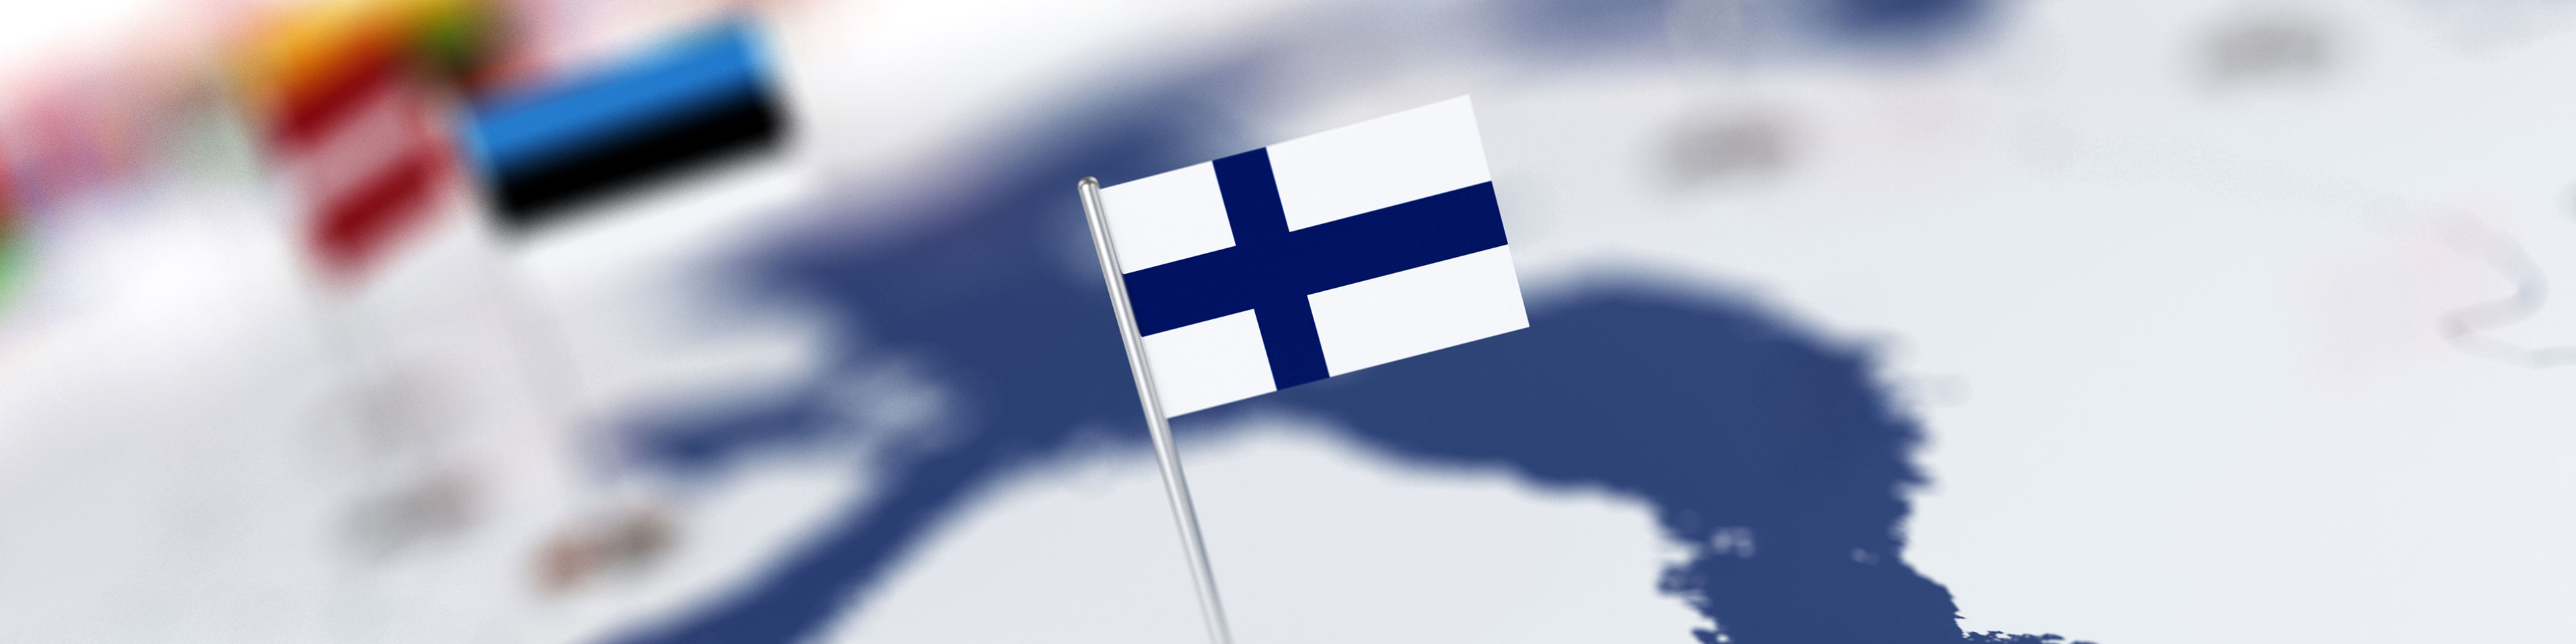 Complying with the Finnish act on money laundering